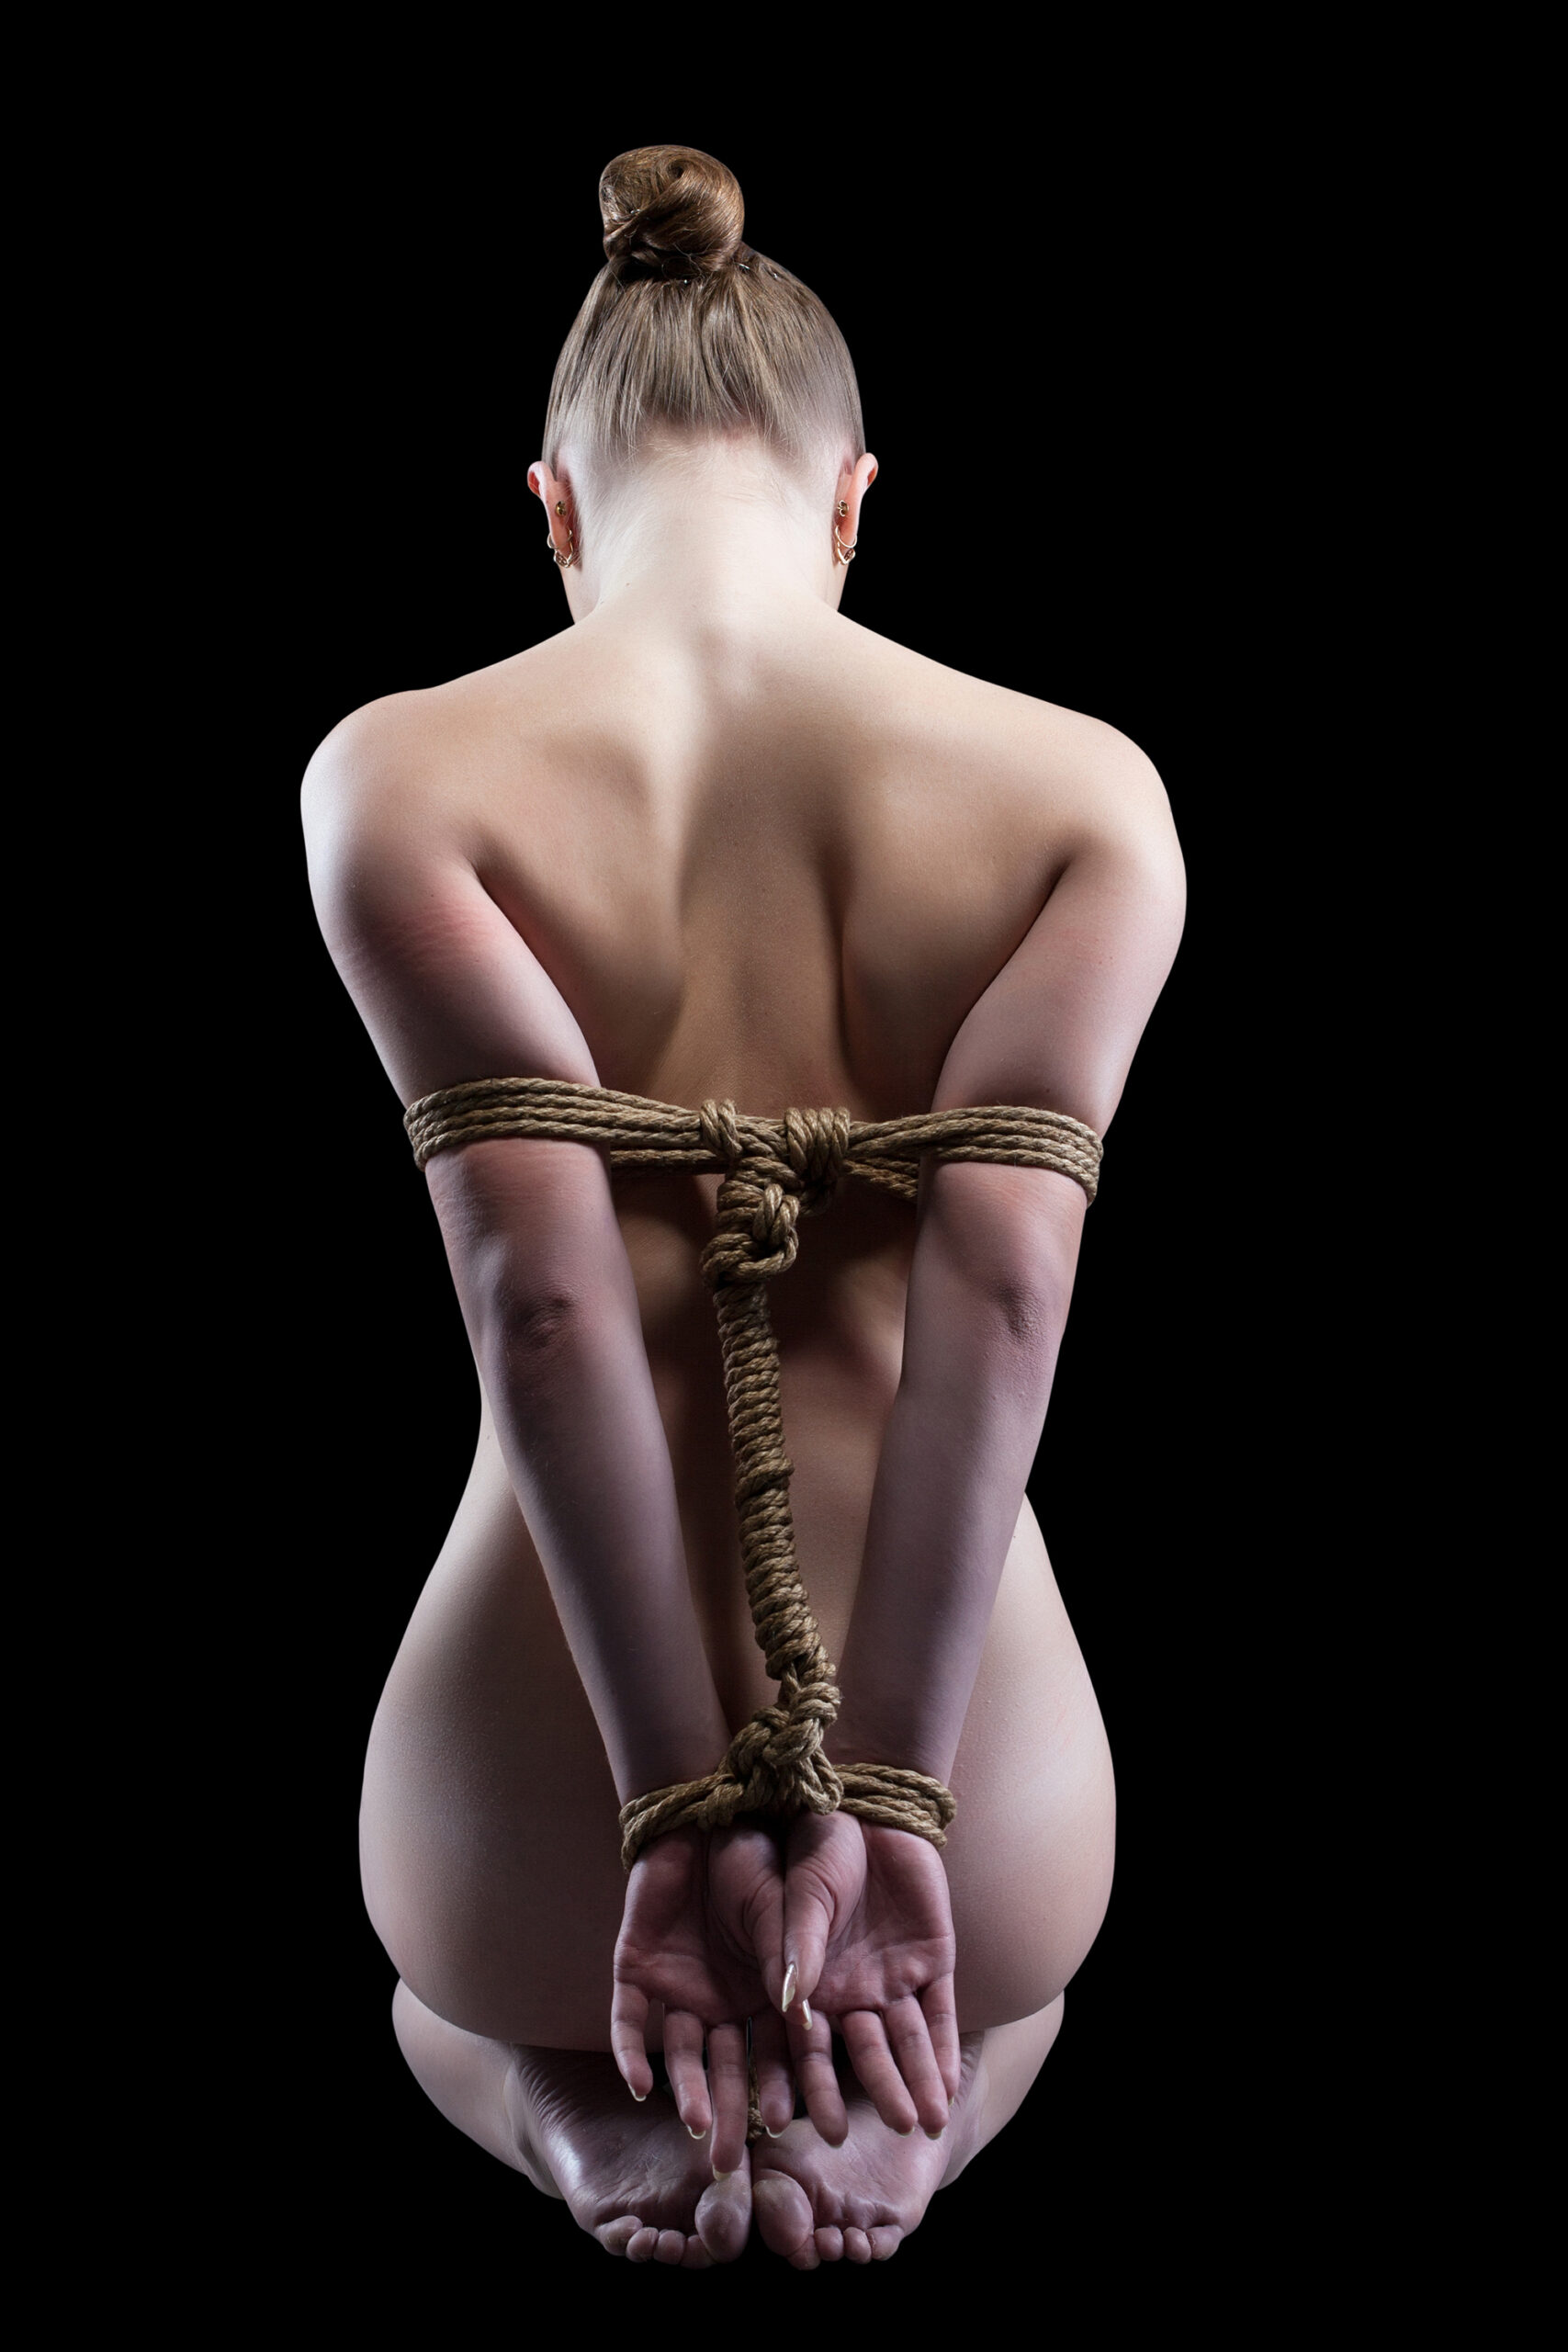 Sensual Bondage With Arms Bound Behind Her Back